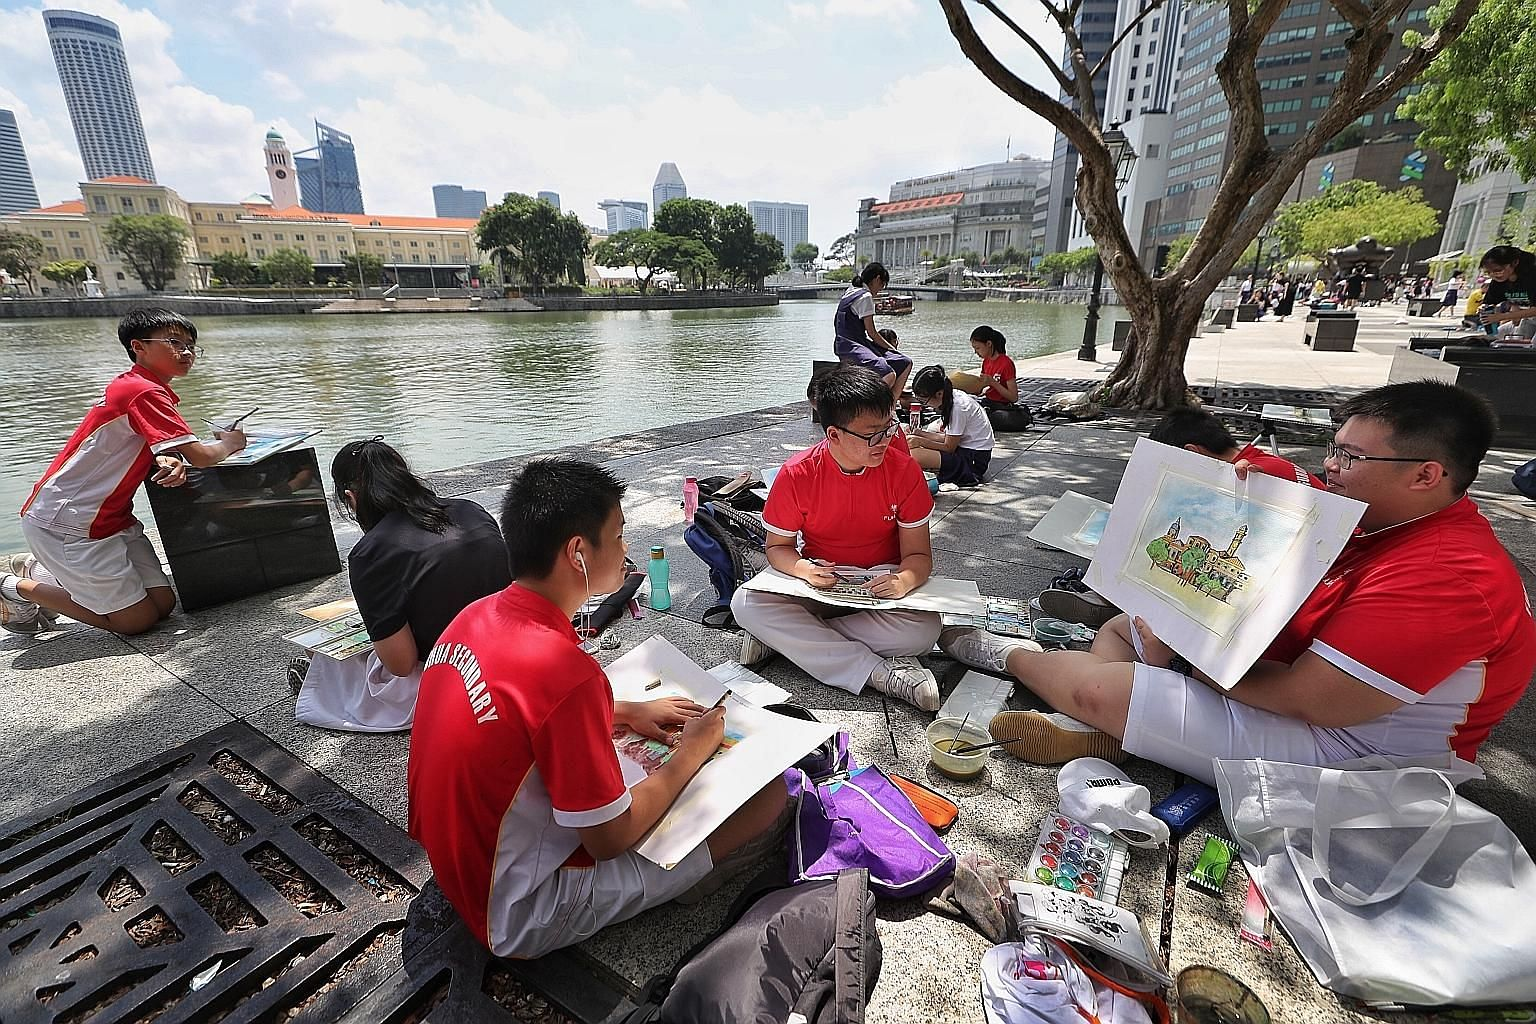 Fuhua Secondary School student Donovan Dua, 14, showing schoolmates Zou Muyan (centre), 15, and Kwa Jun Hao, 14, his painting of buildings around the Singapore River.